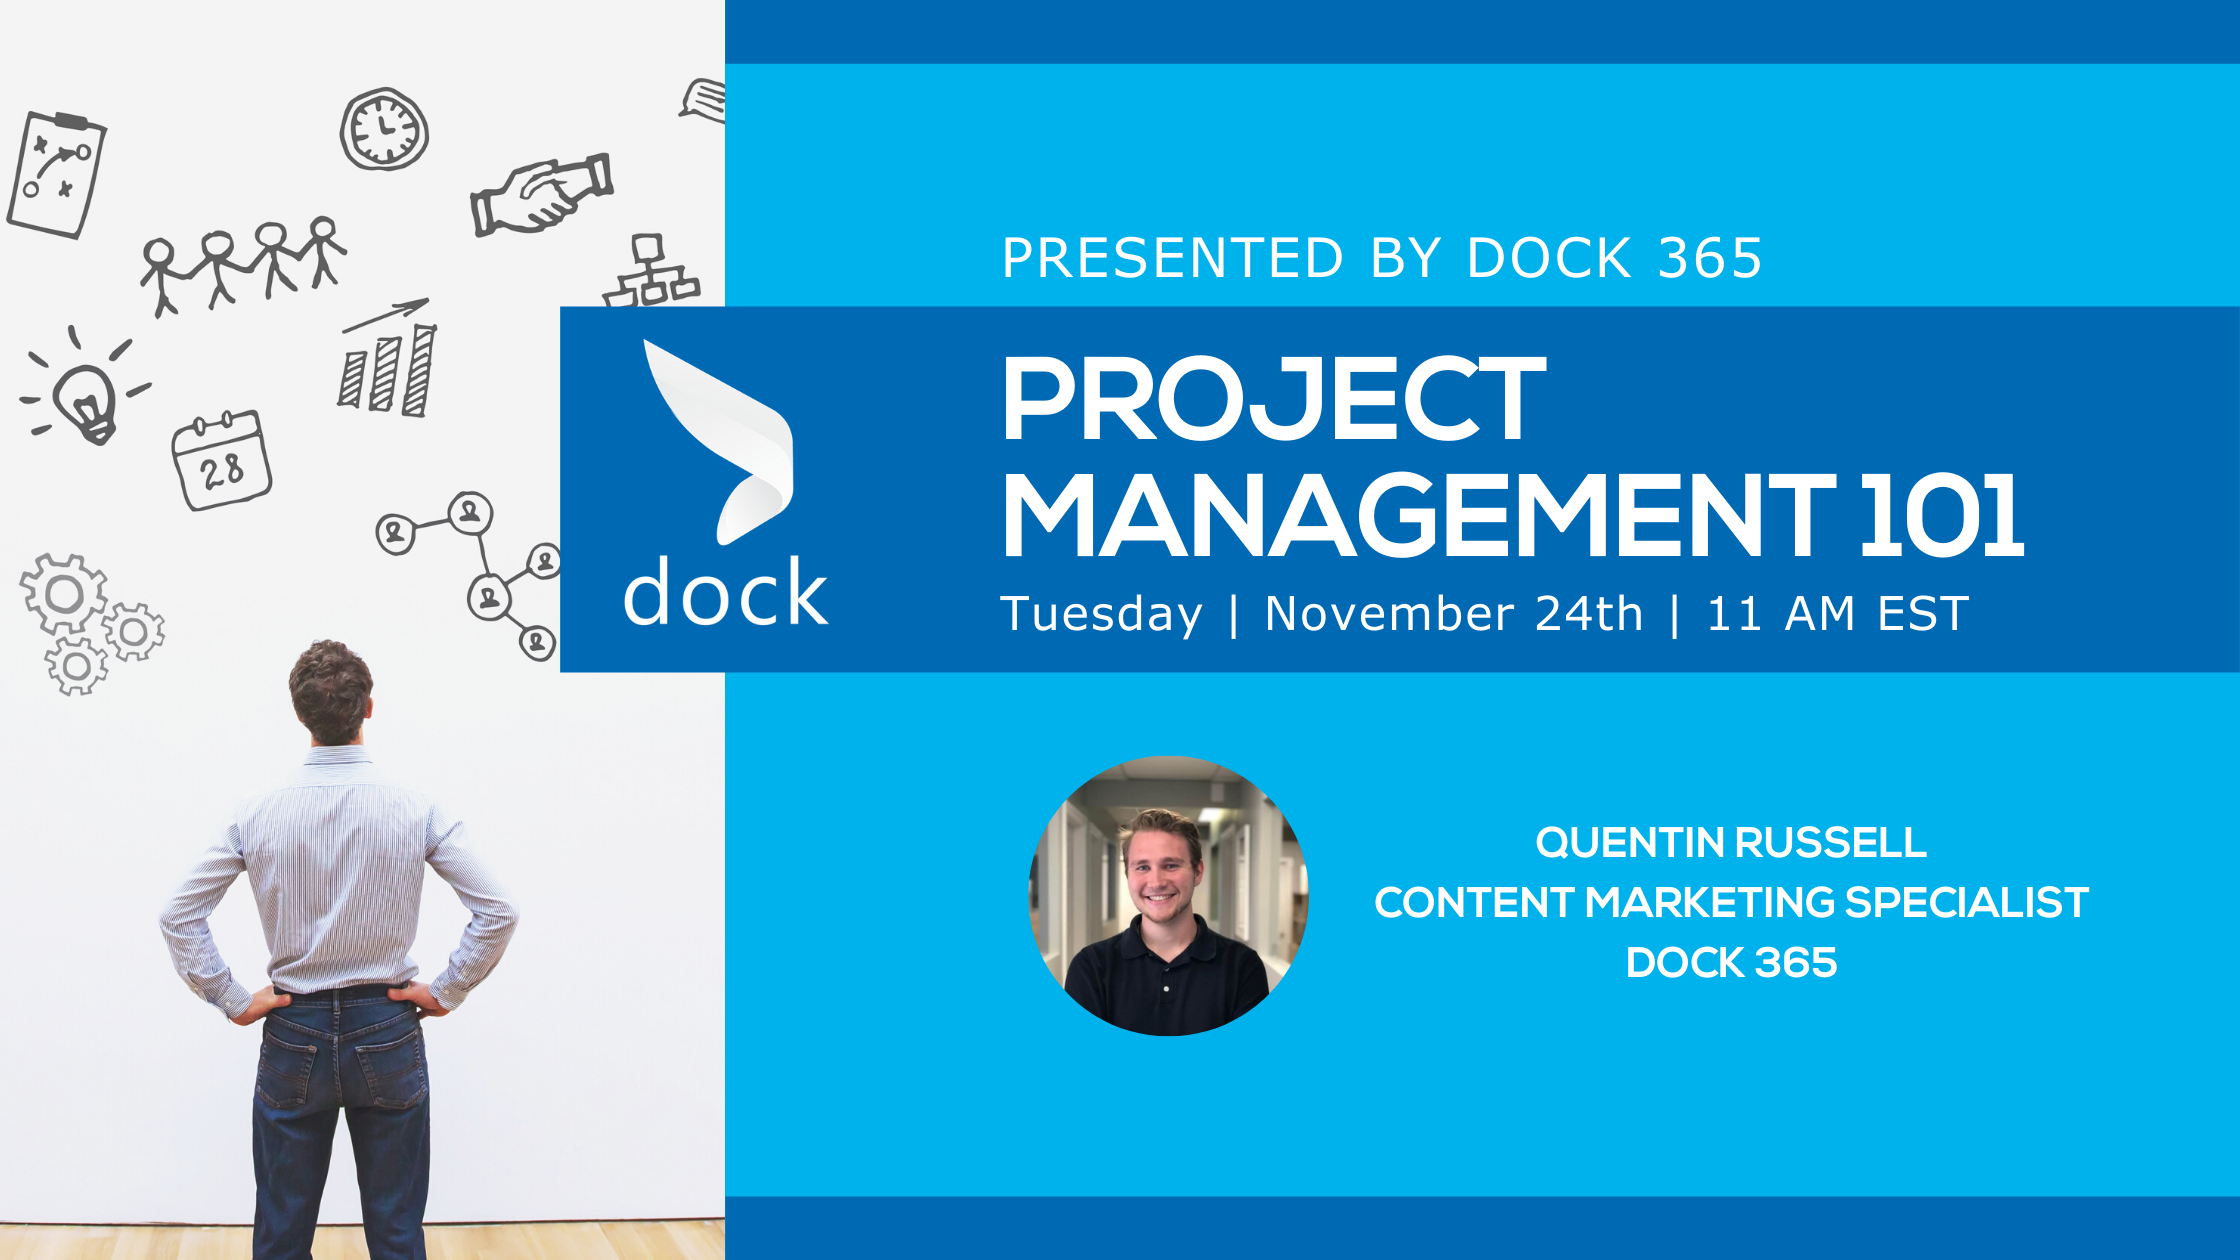 SharePoint webinar - Project Management 101